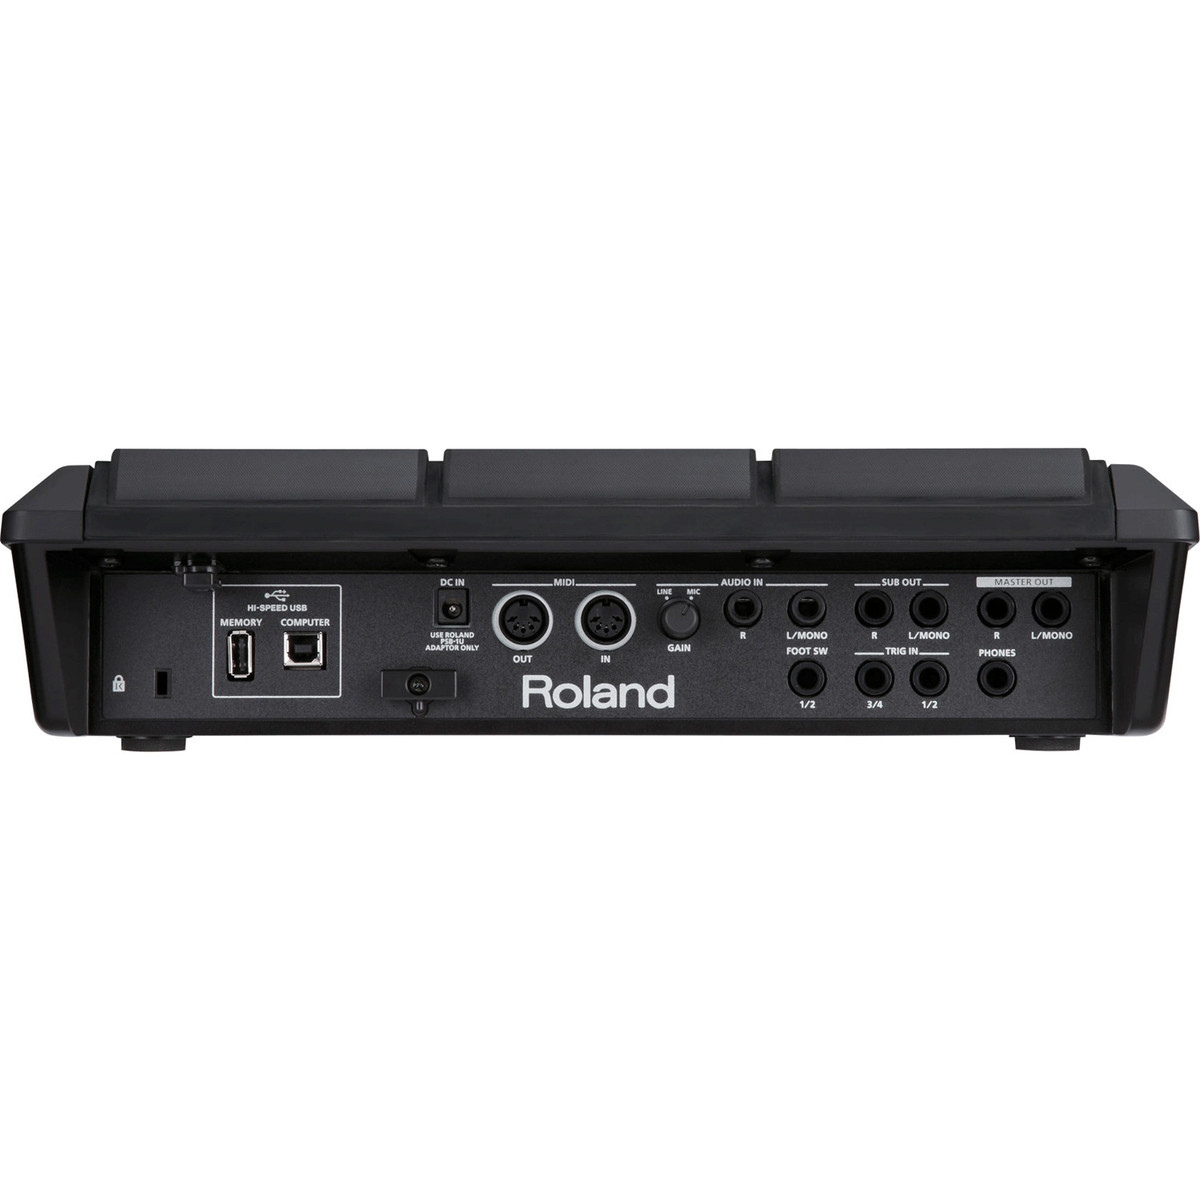 roland spd sx manual pdf